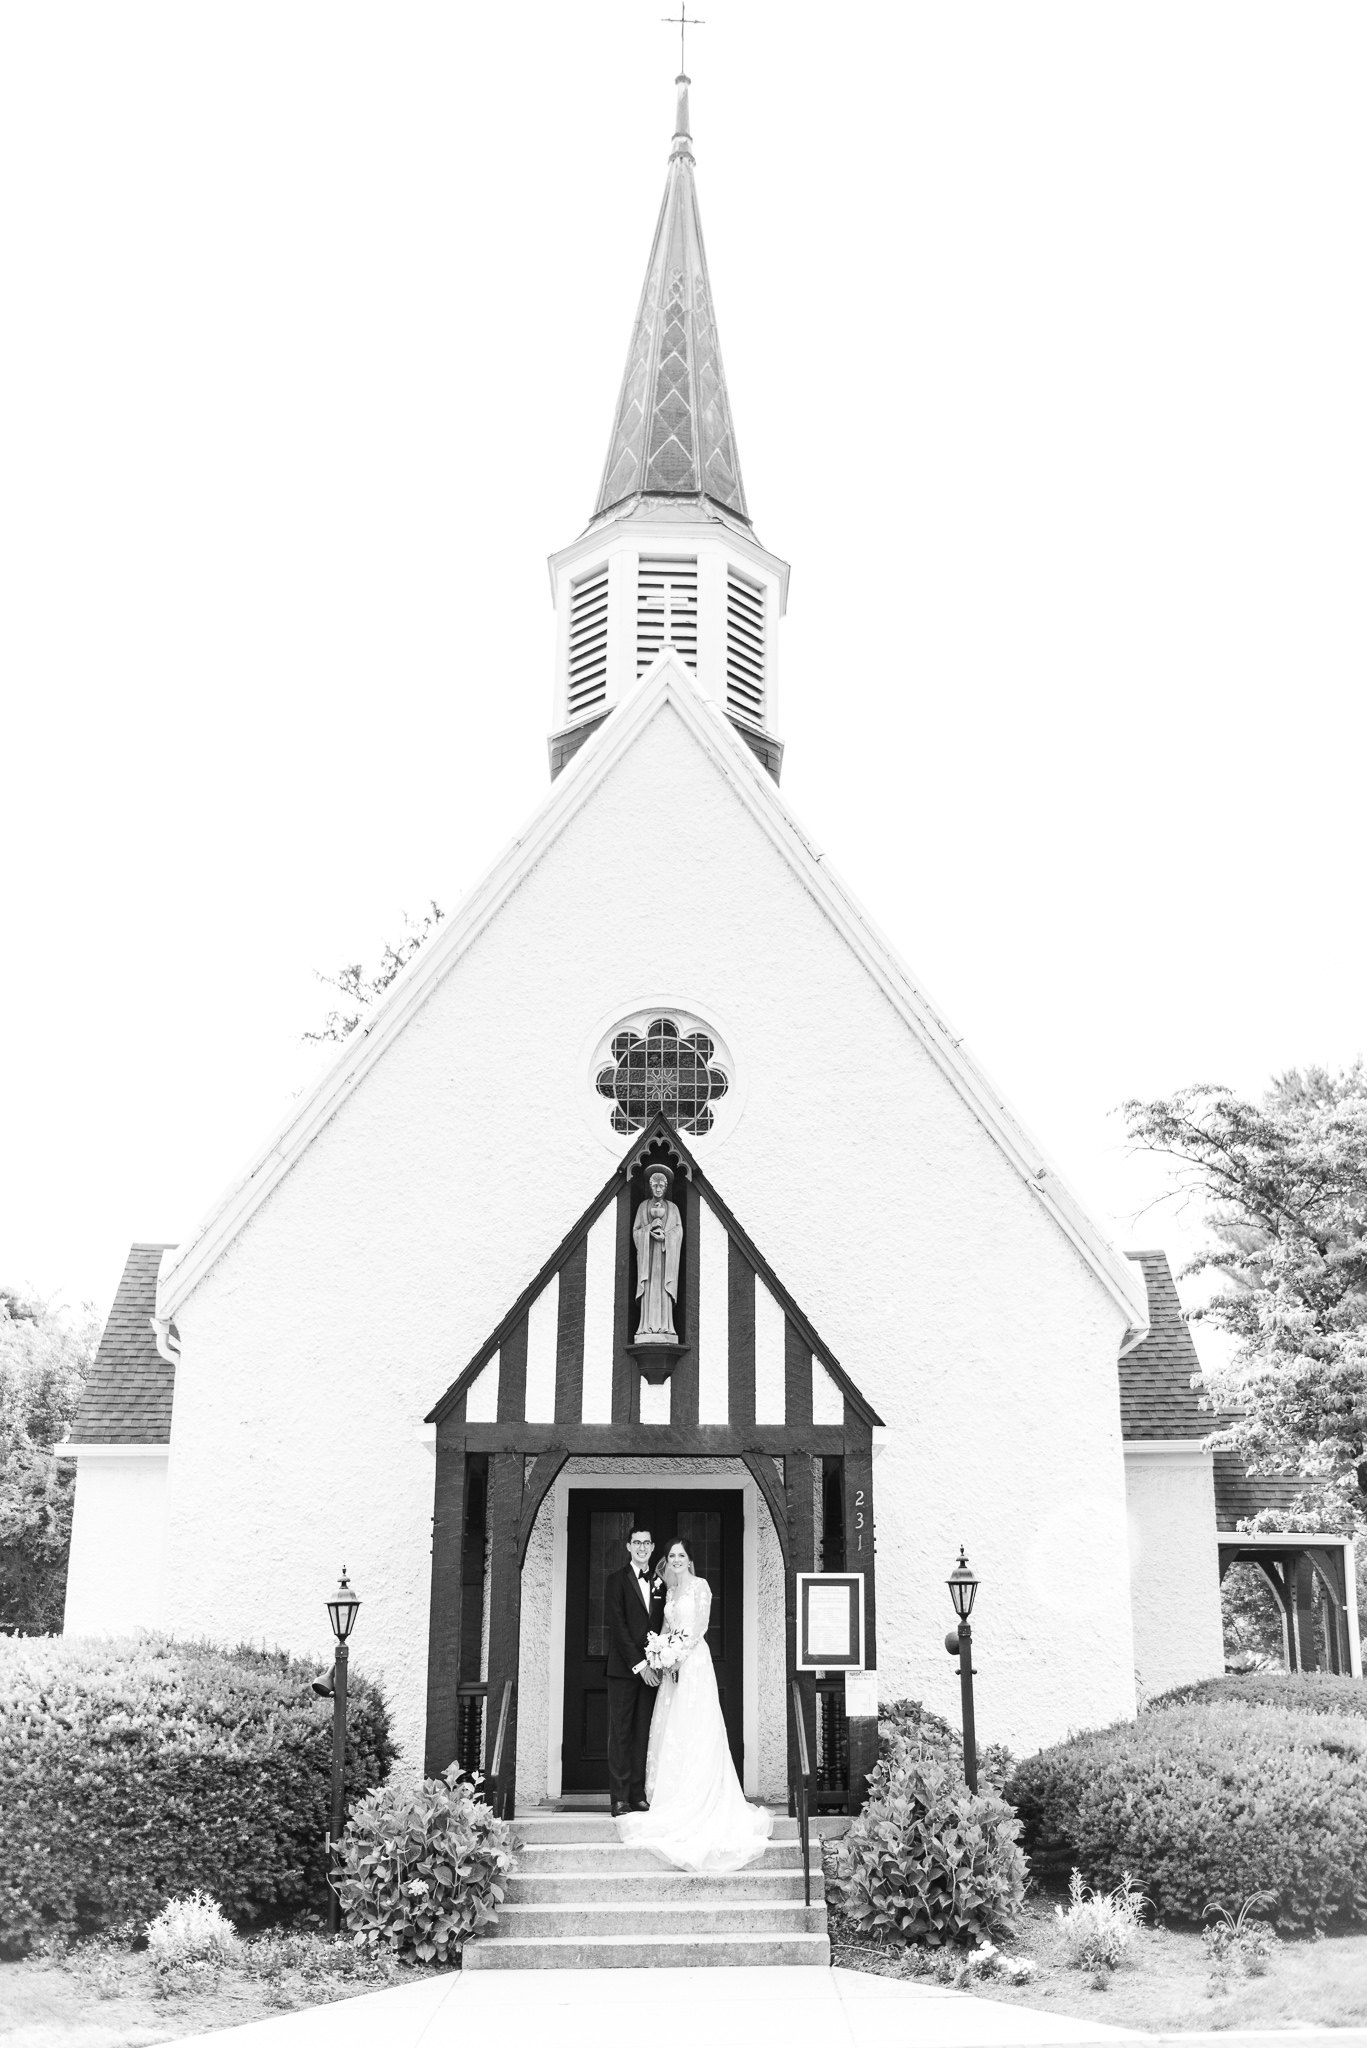 A traditional Catholic bride and groom pose for a classic portrait outside the Chapel of Immaculate Conception in Leesburg, Northern Virginia